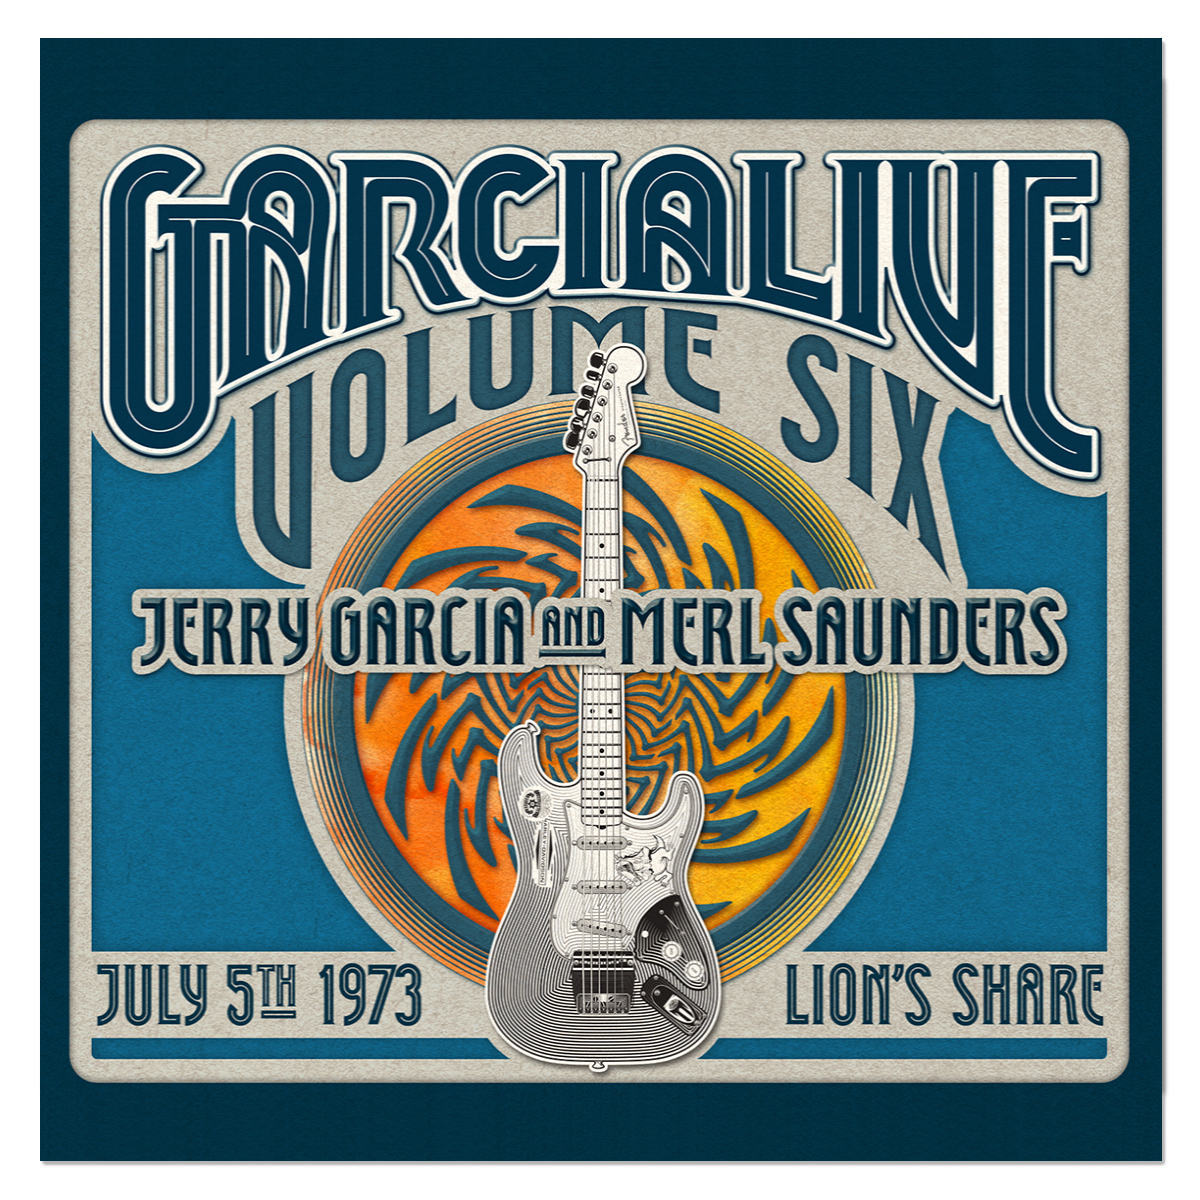 Jerry Garcia & Merl Saunders - GarciaLive Volume 6: 7/5/73 3-CD Set